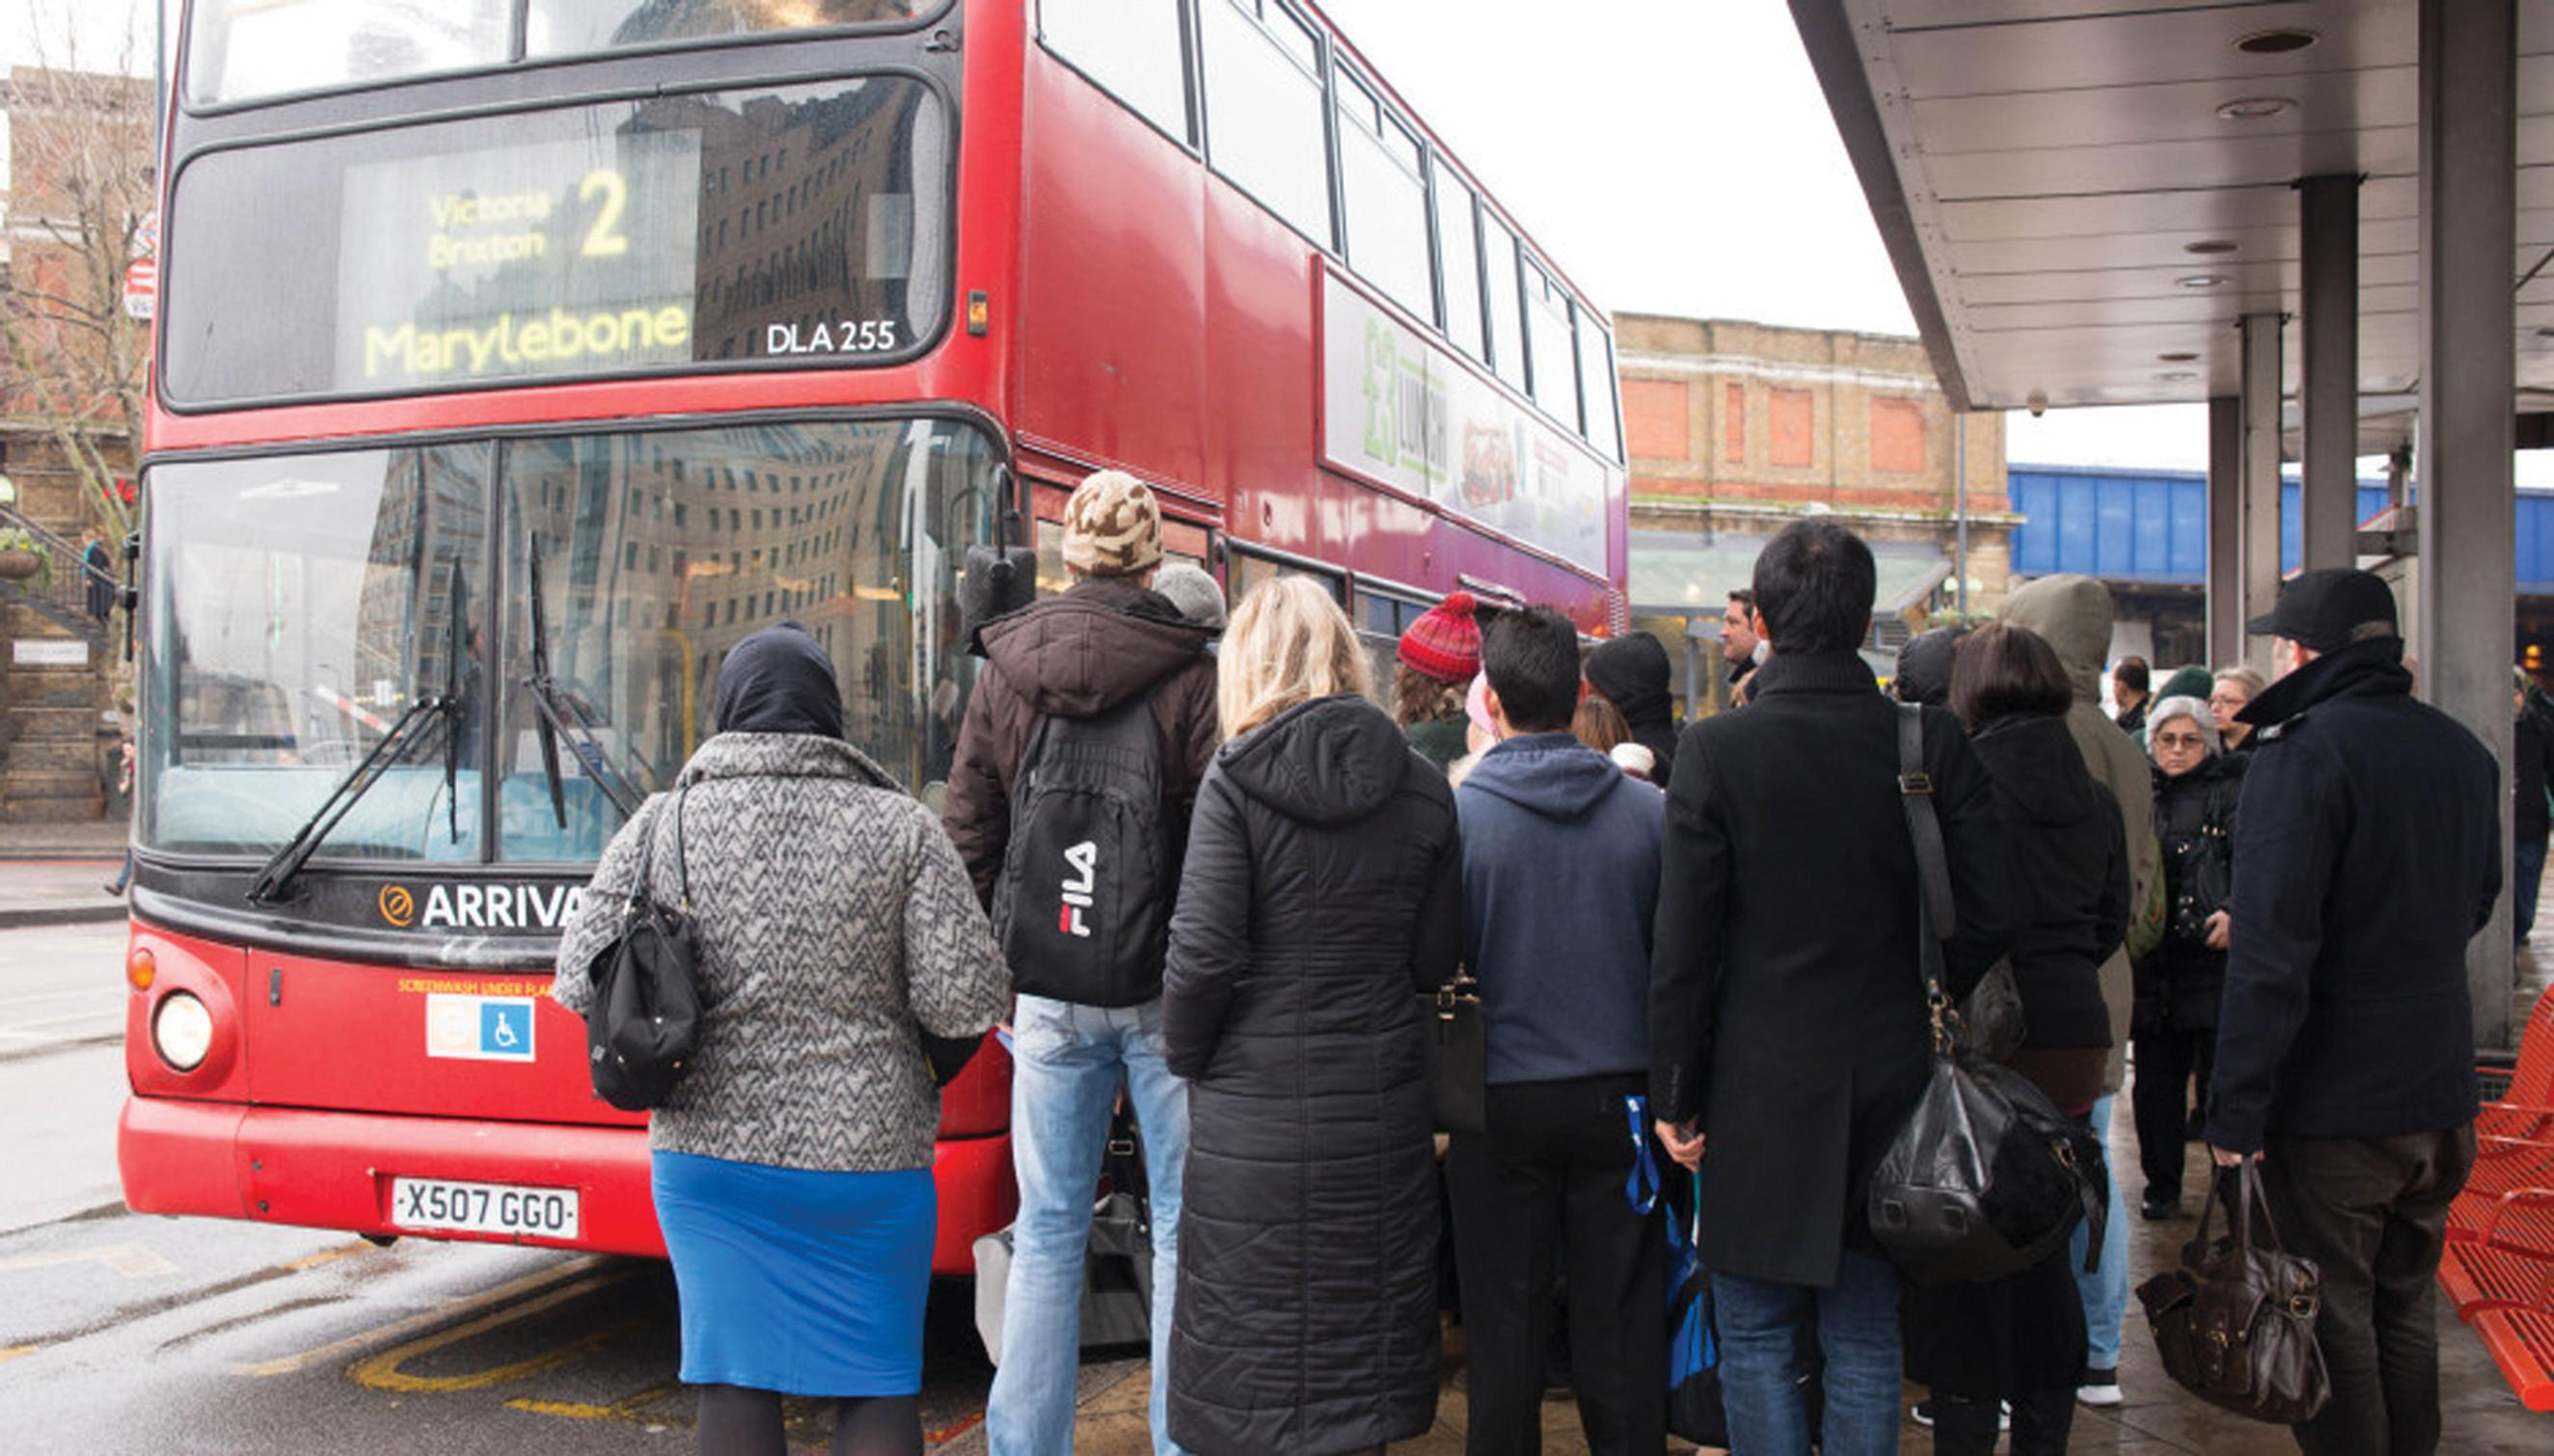 Buses: evening and weekend trips down